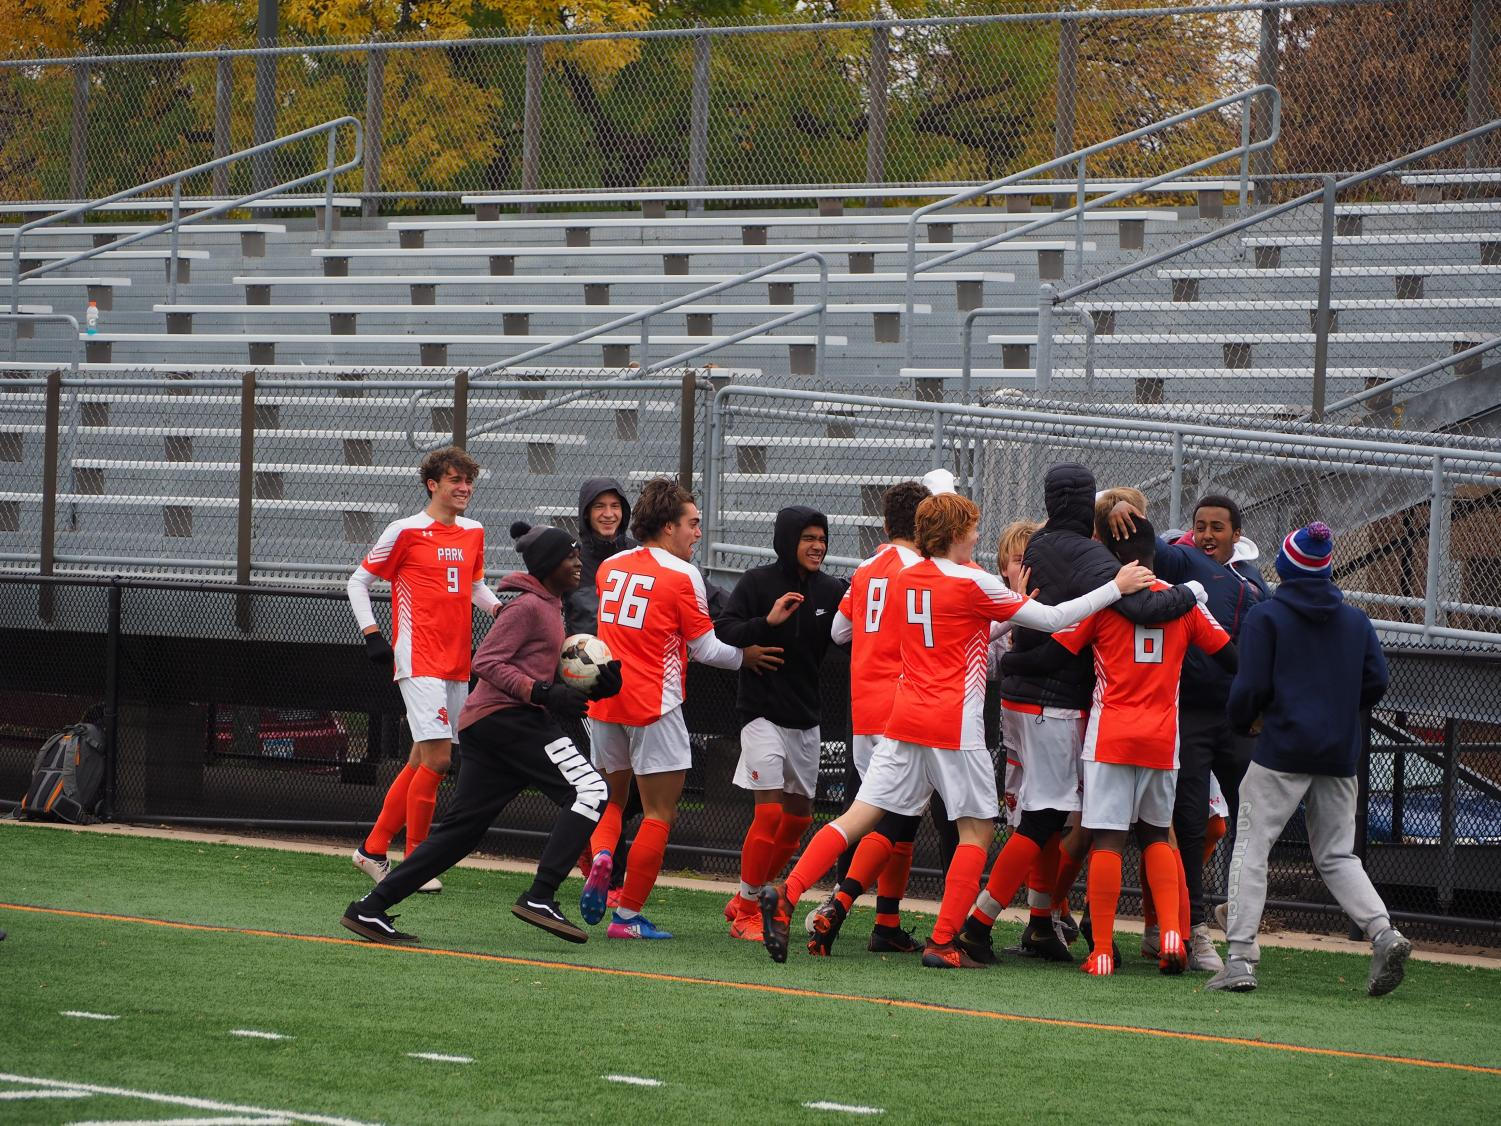 Park celebrates after junior Randy Mayele scores in the section semifinal against Kennedy Oct. 13. They won the game 2-1 and went on to play Wayzata in the section final Oct. 16.